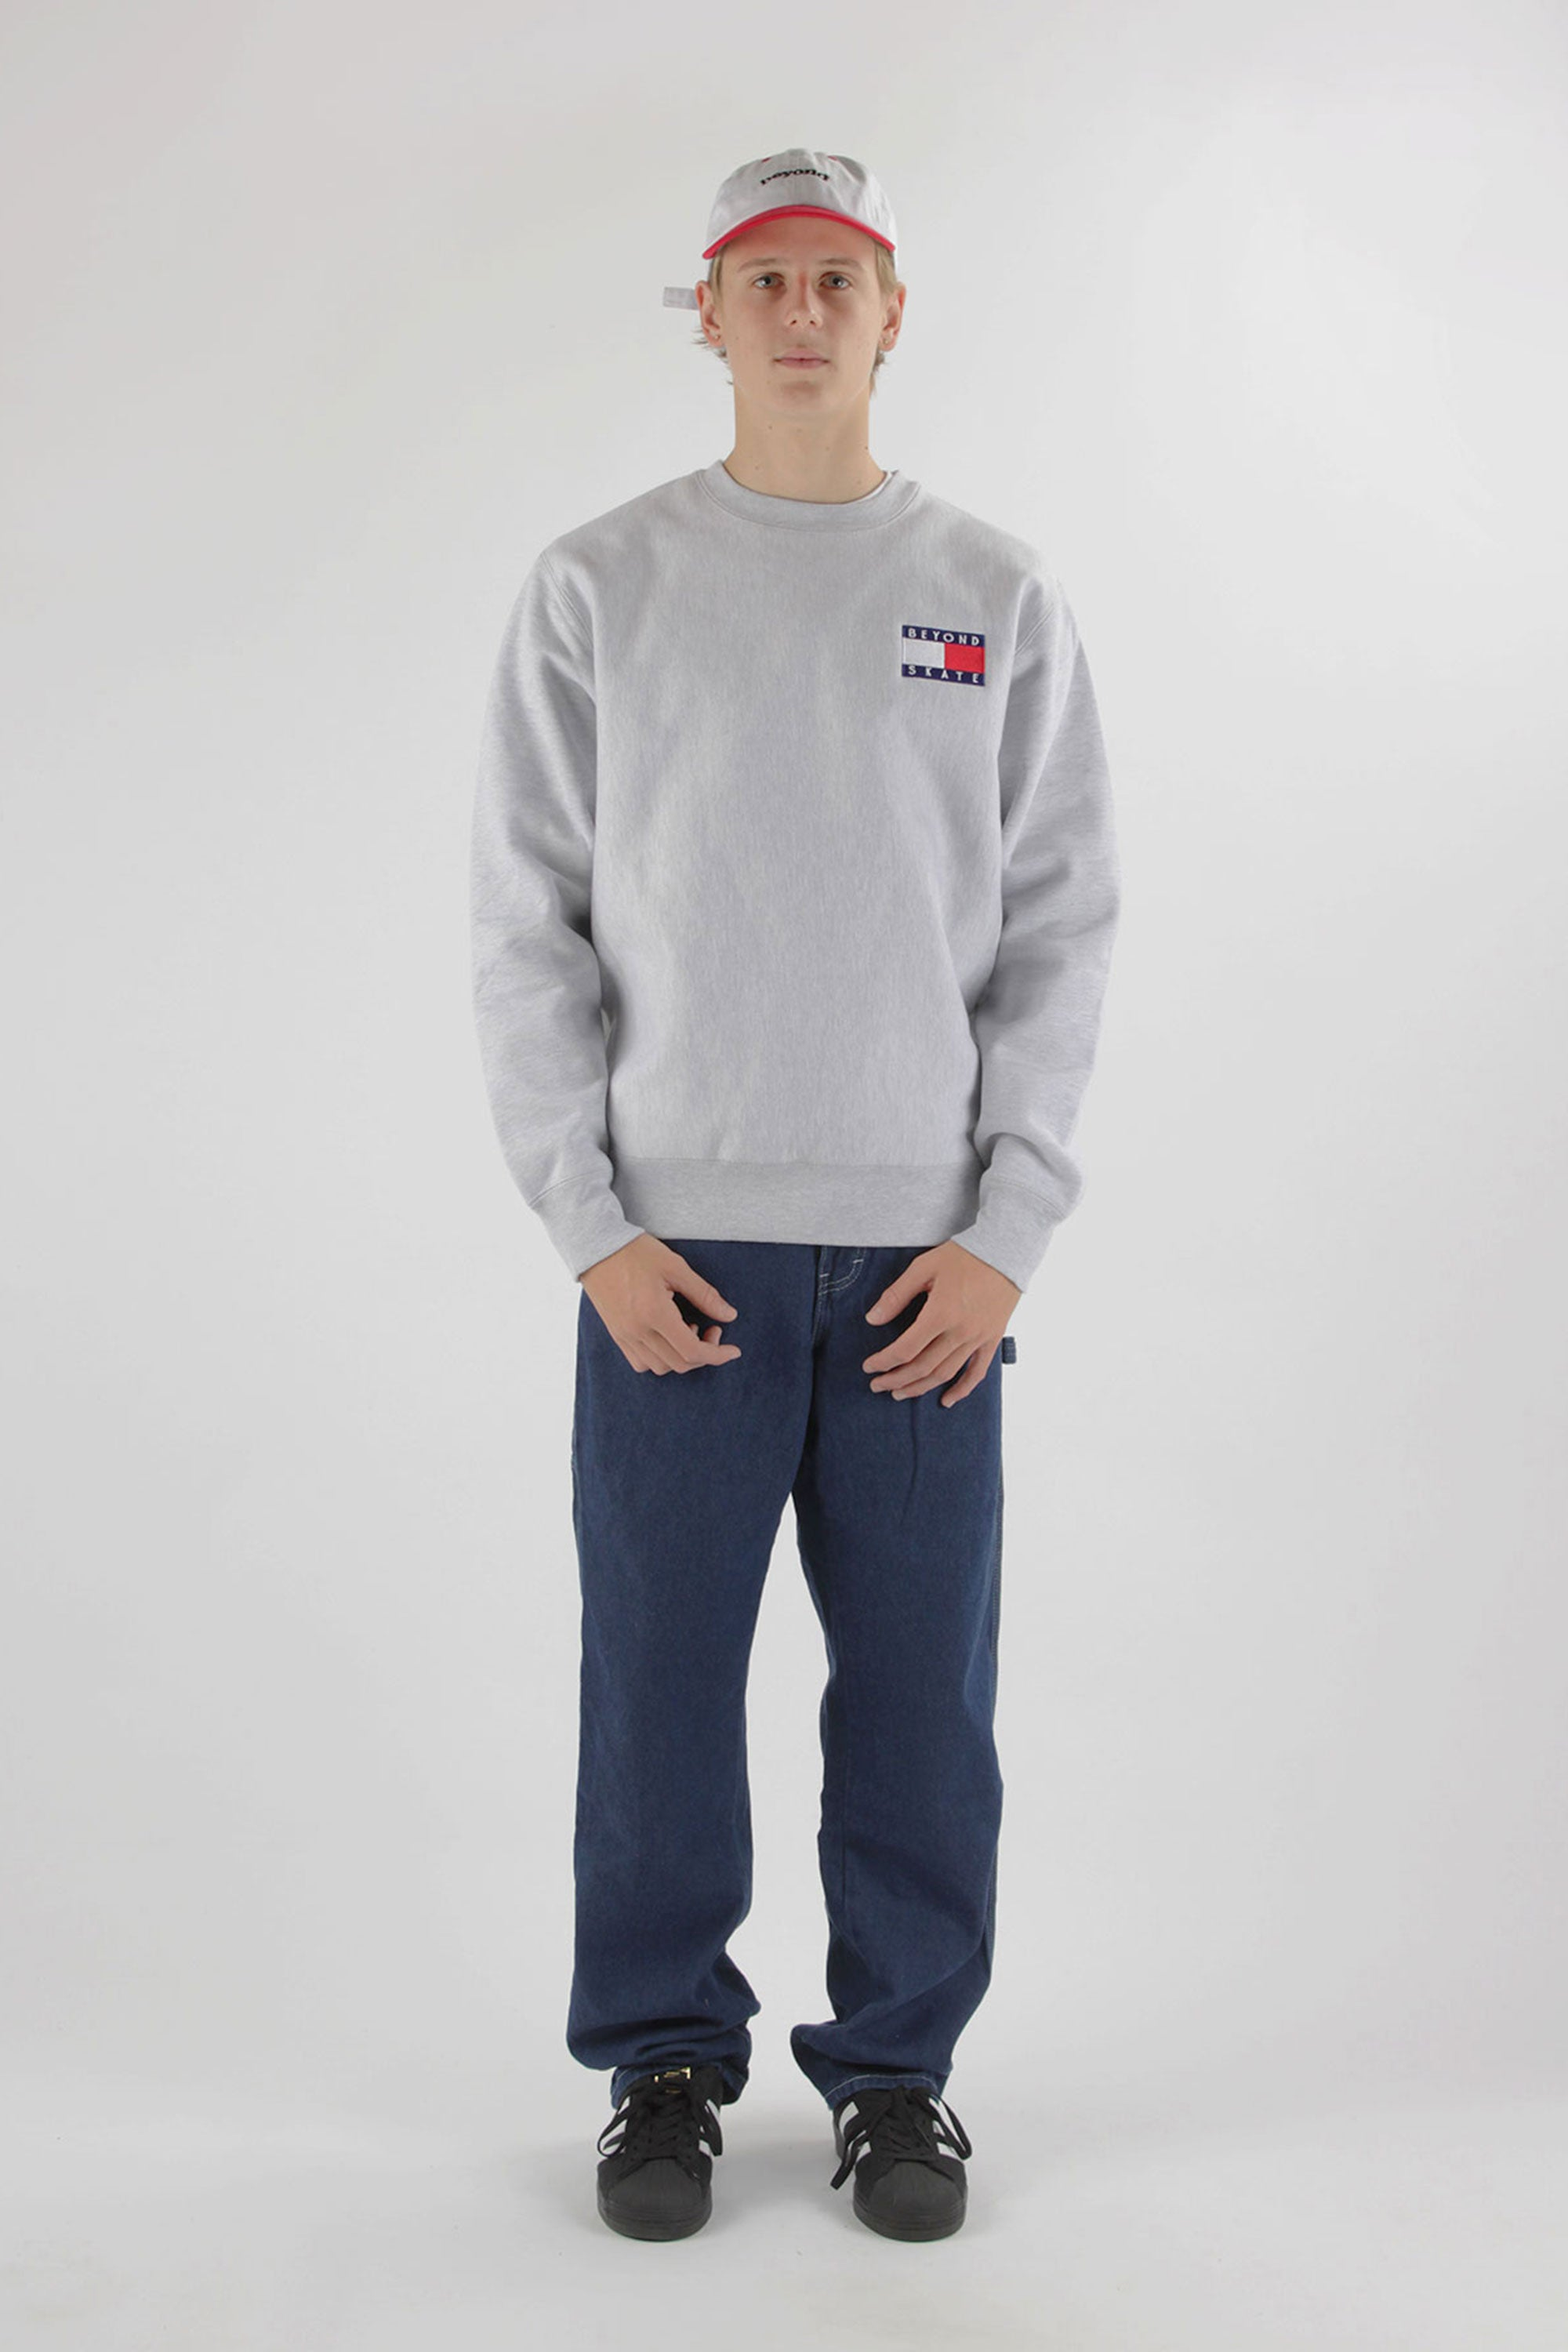 Beyond Tommy Crewneck Product Photo #2